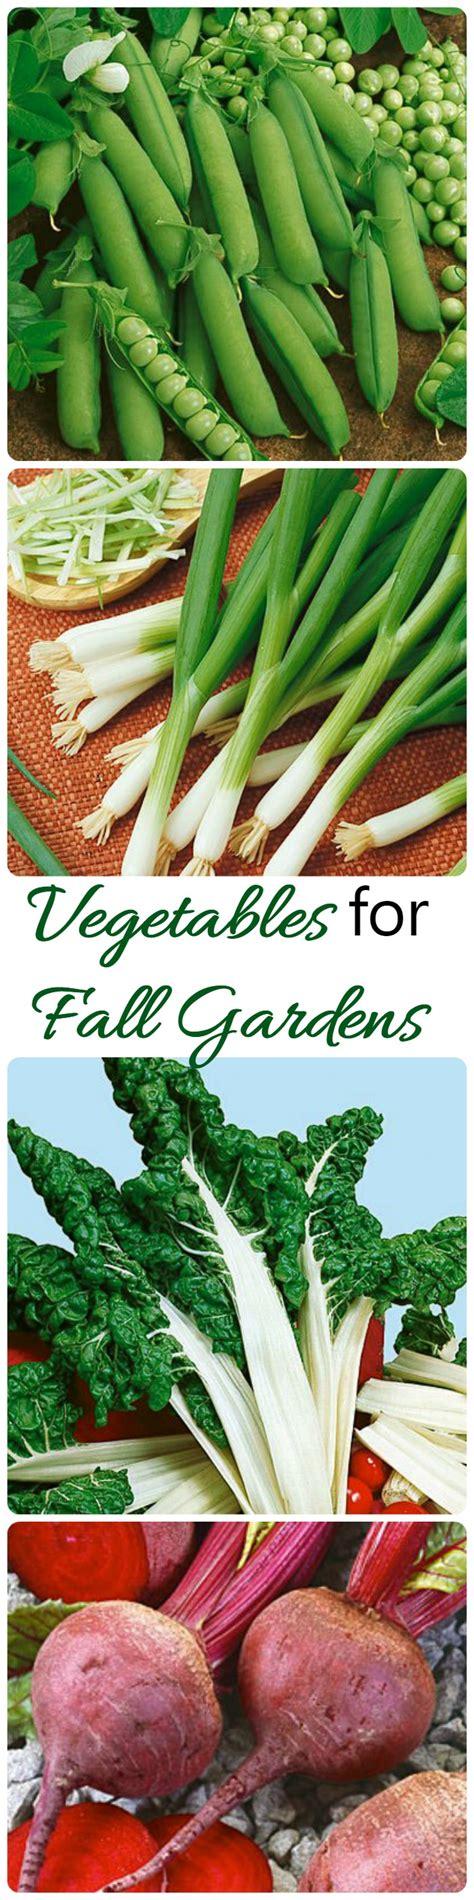 Fall Gardens What Vegetables To Plant Now The What To Plant In Vegetable Garden Now